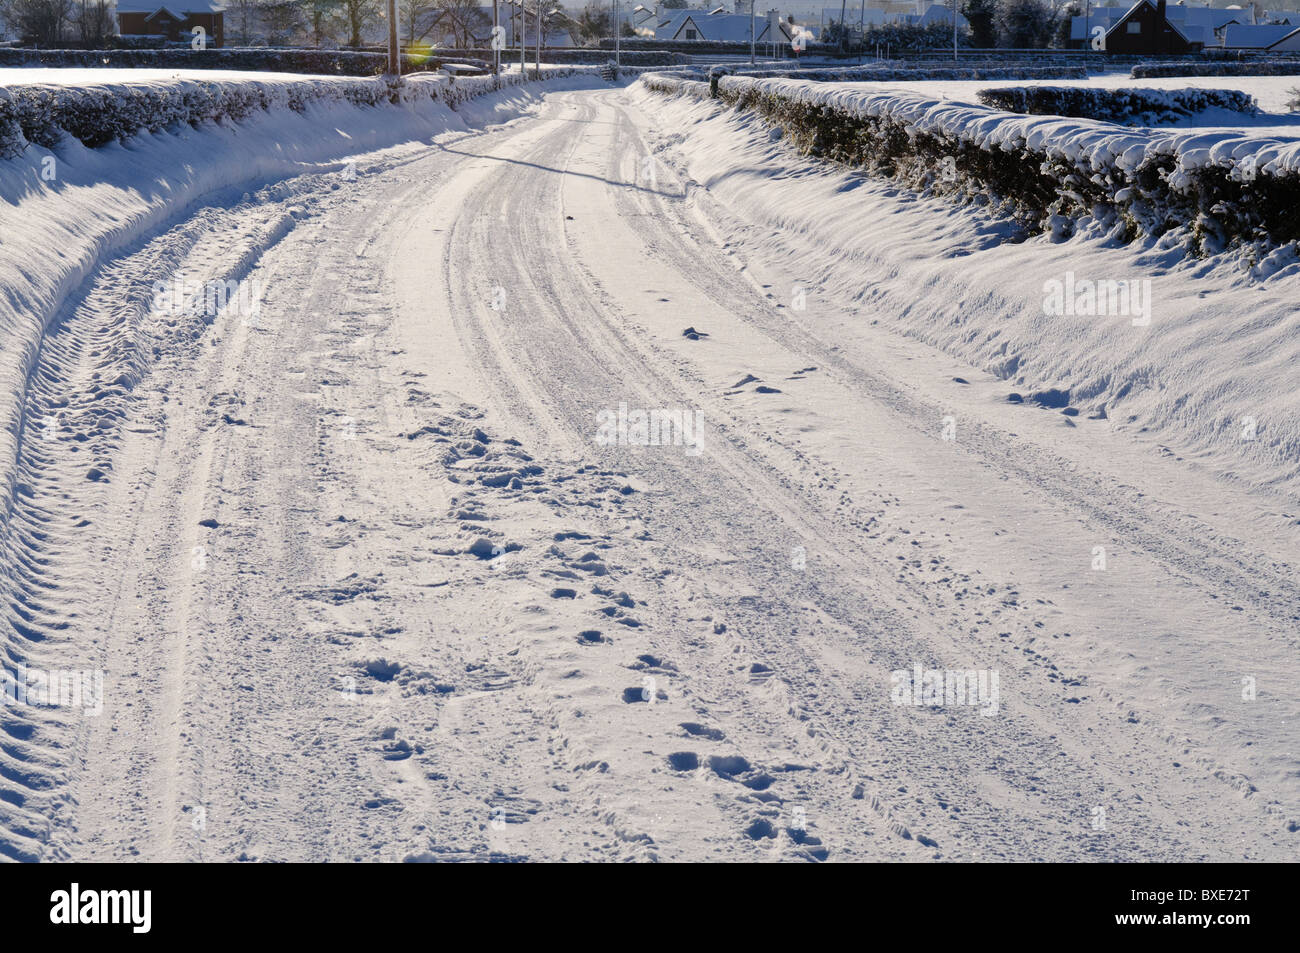 Snow covered rural road with a number of tyre tracks - Stock Image